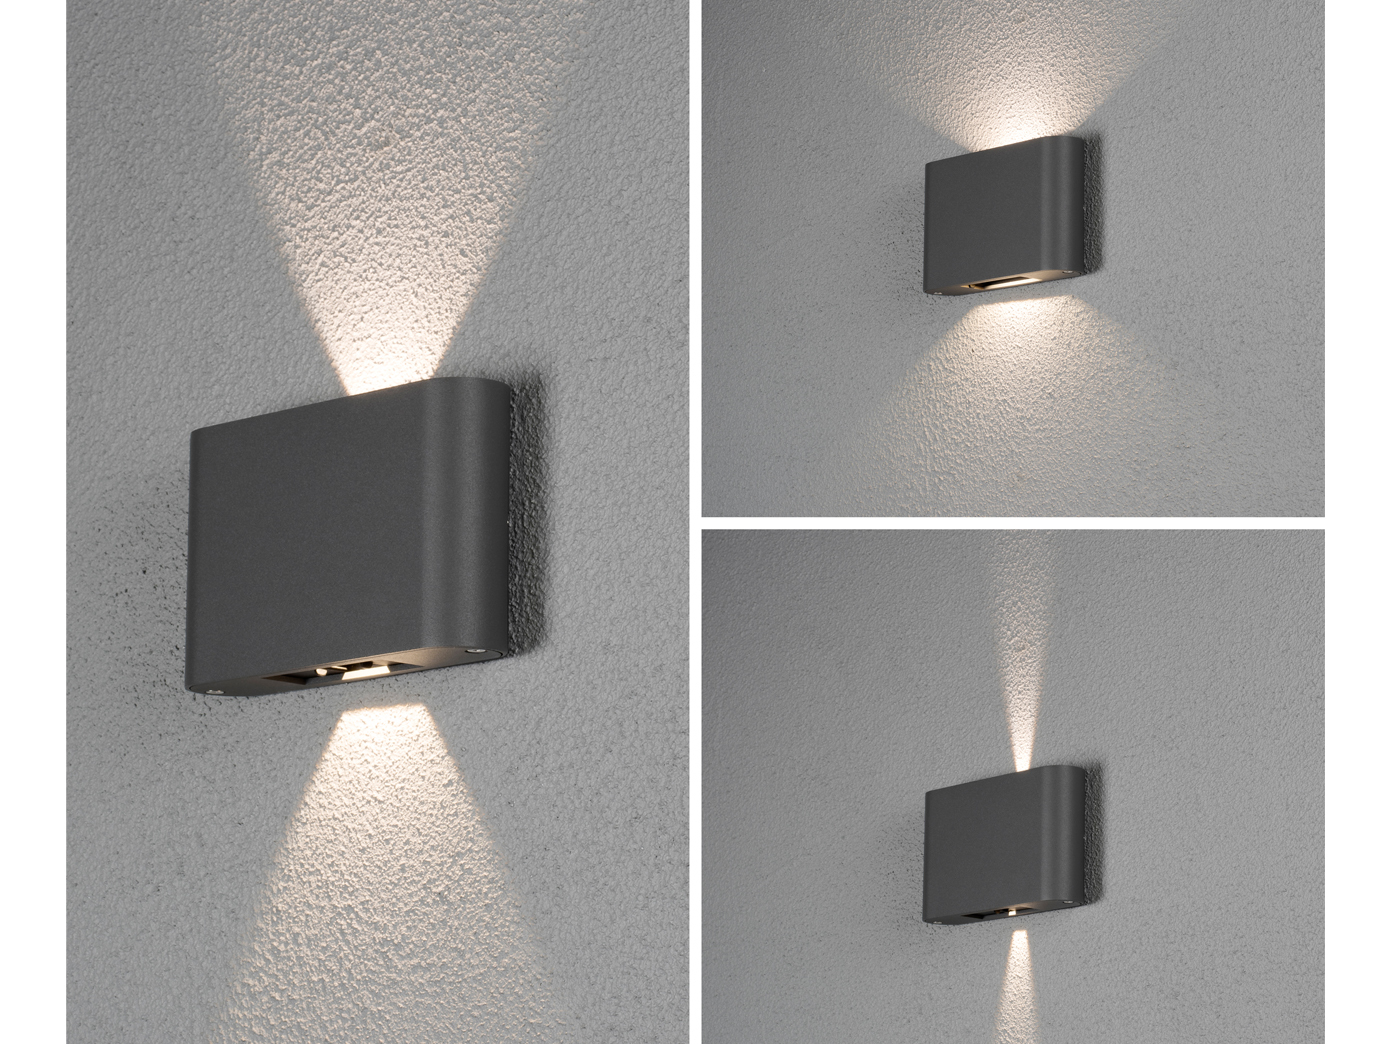 Extrem Flache LED Außenleuchte Anthrazit Up & Down 12W IP54 JT59